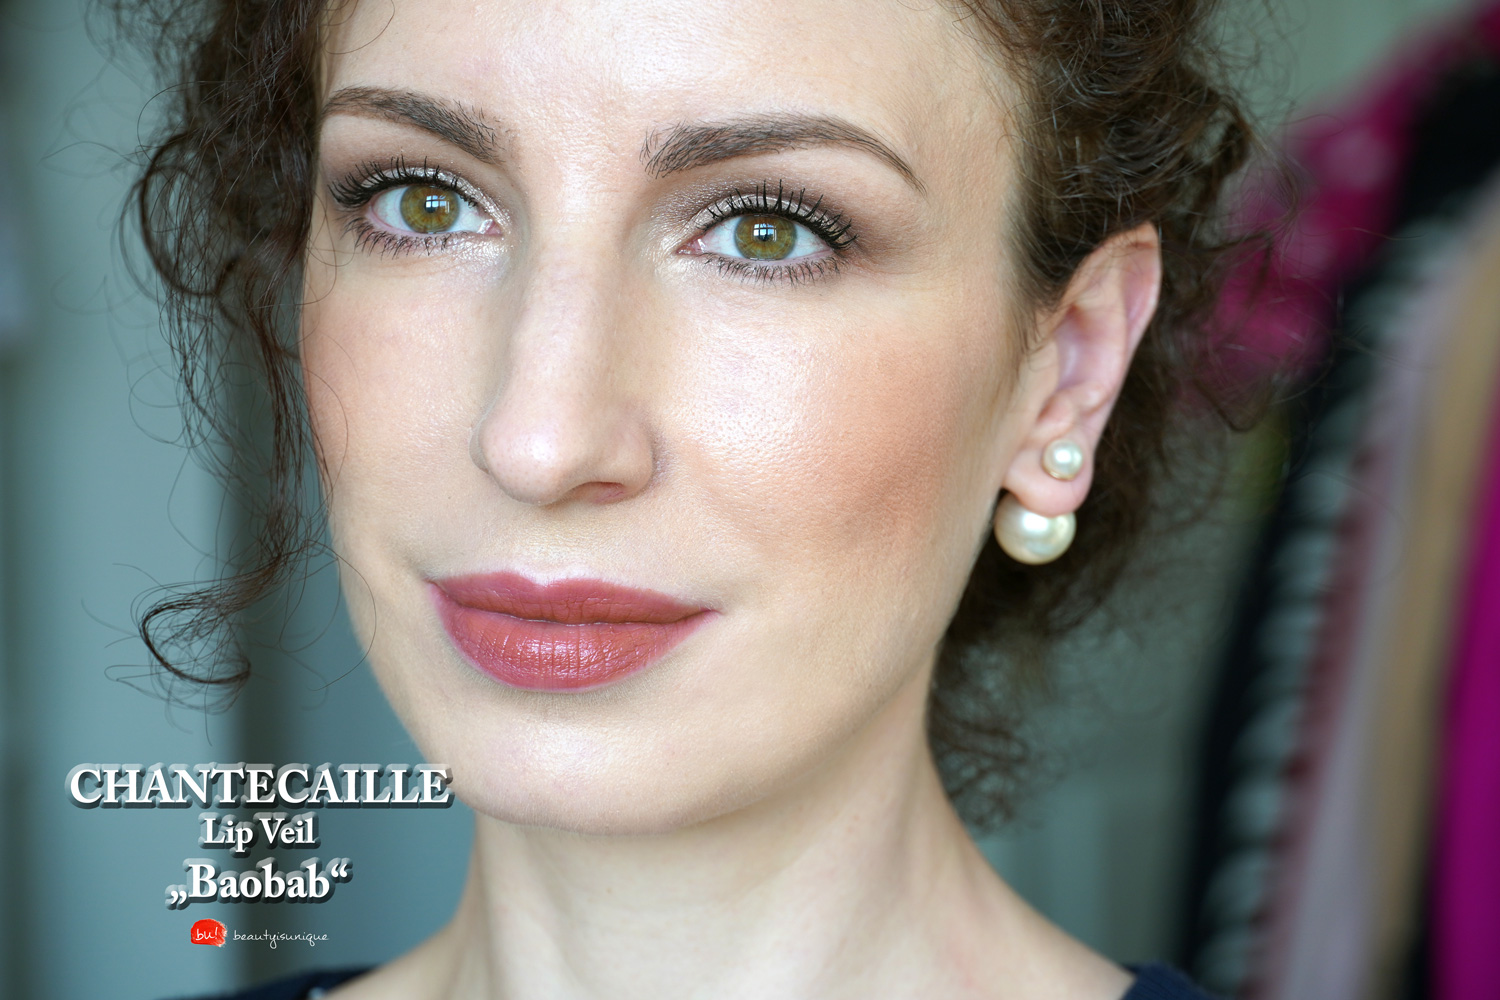 chantecaille-lip-veil-baobab-swatches